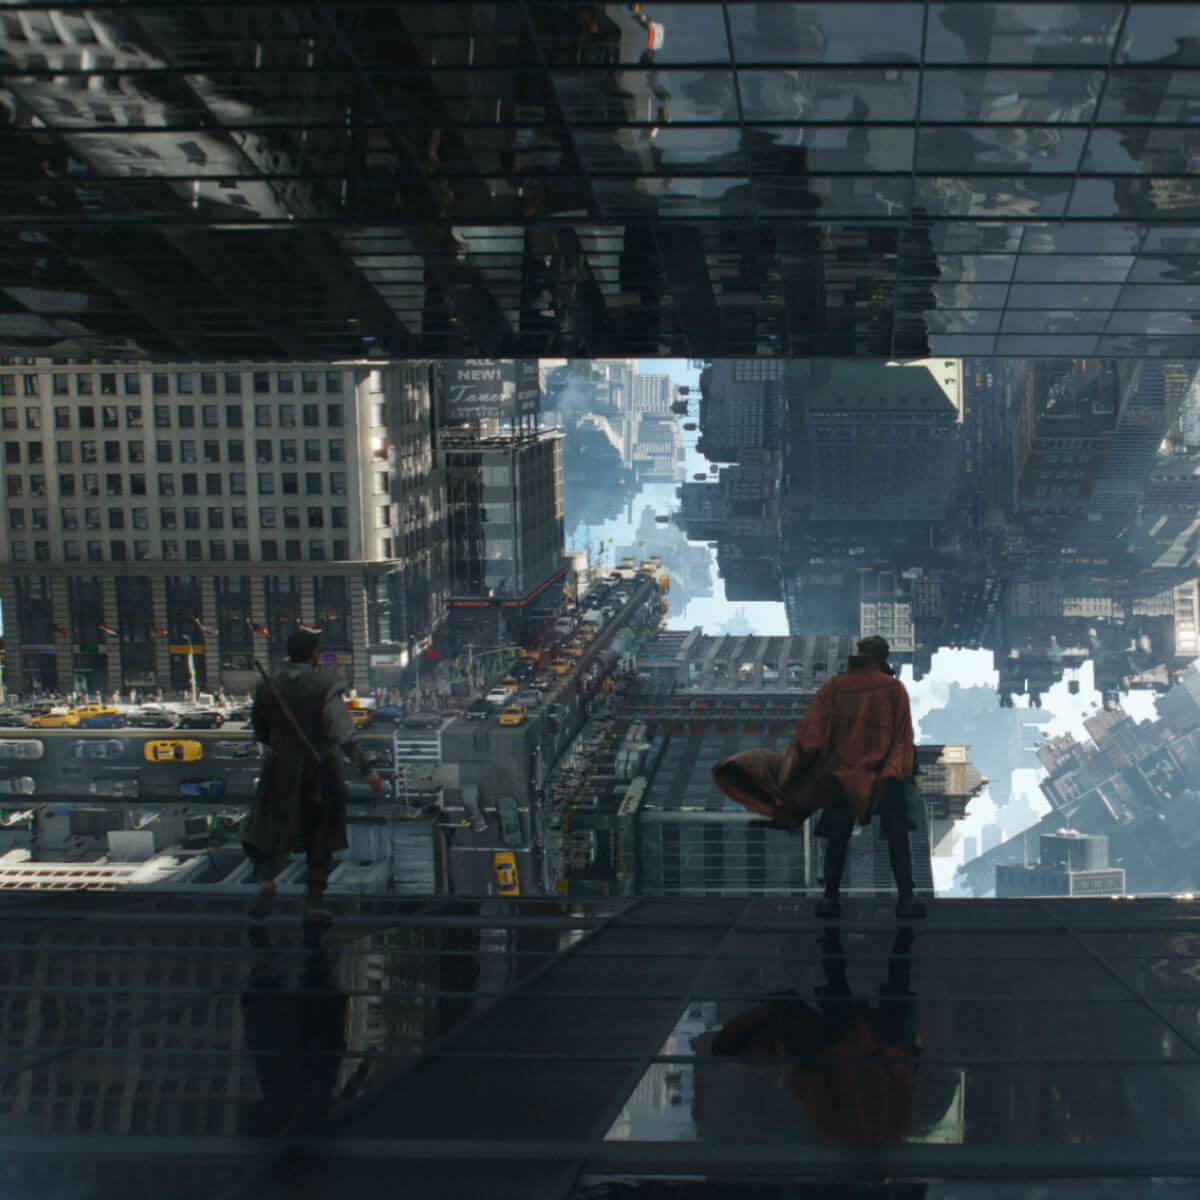 Magic landscapes in Doctor Strange